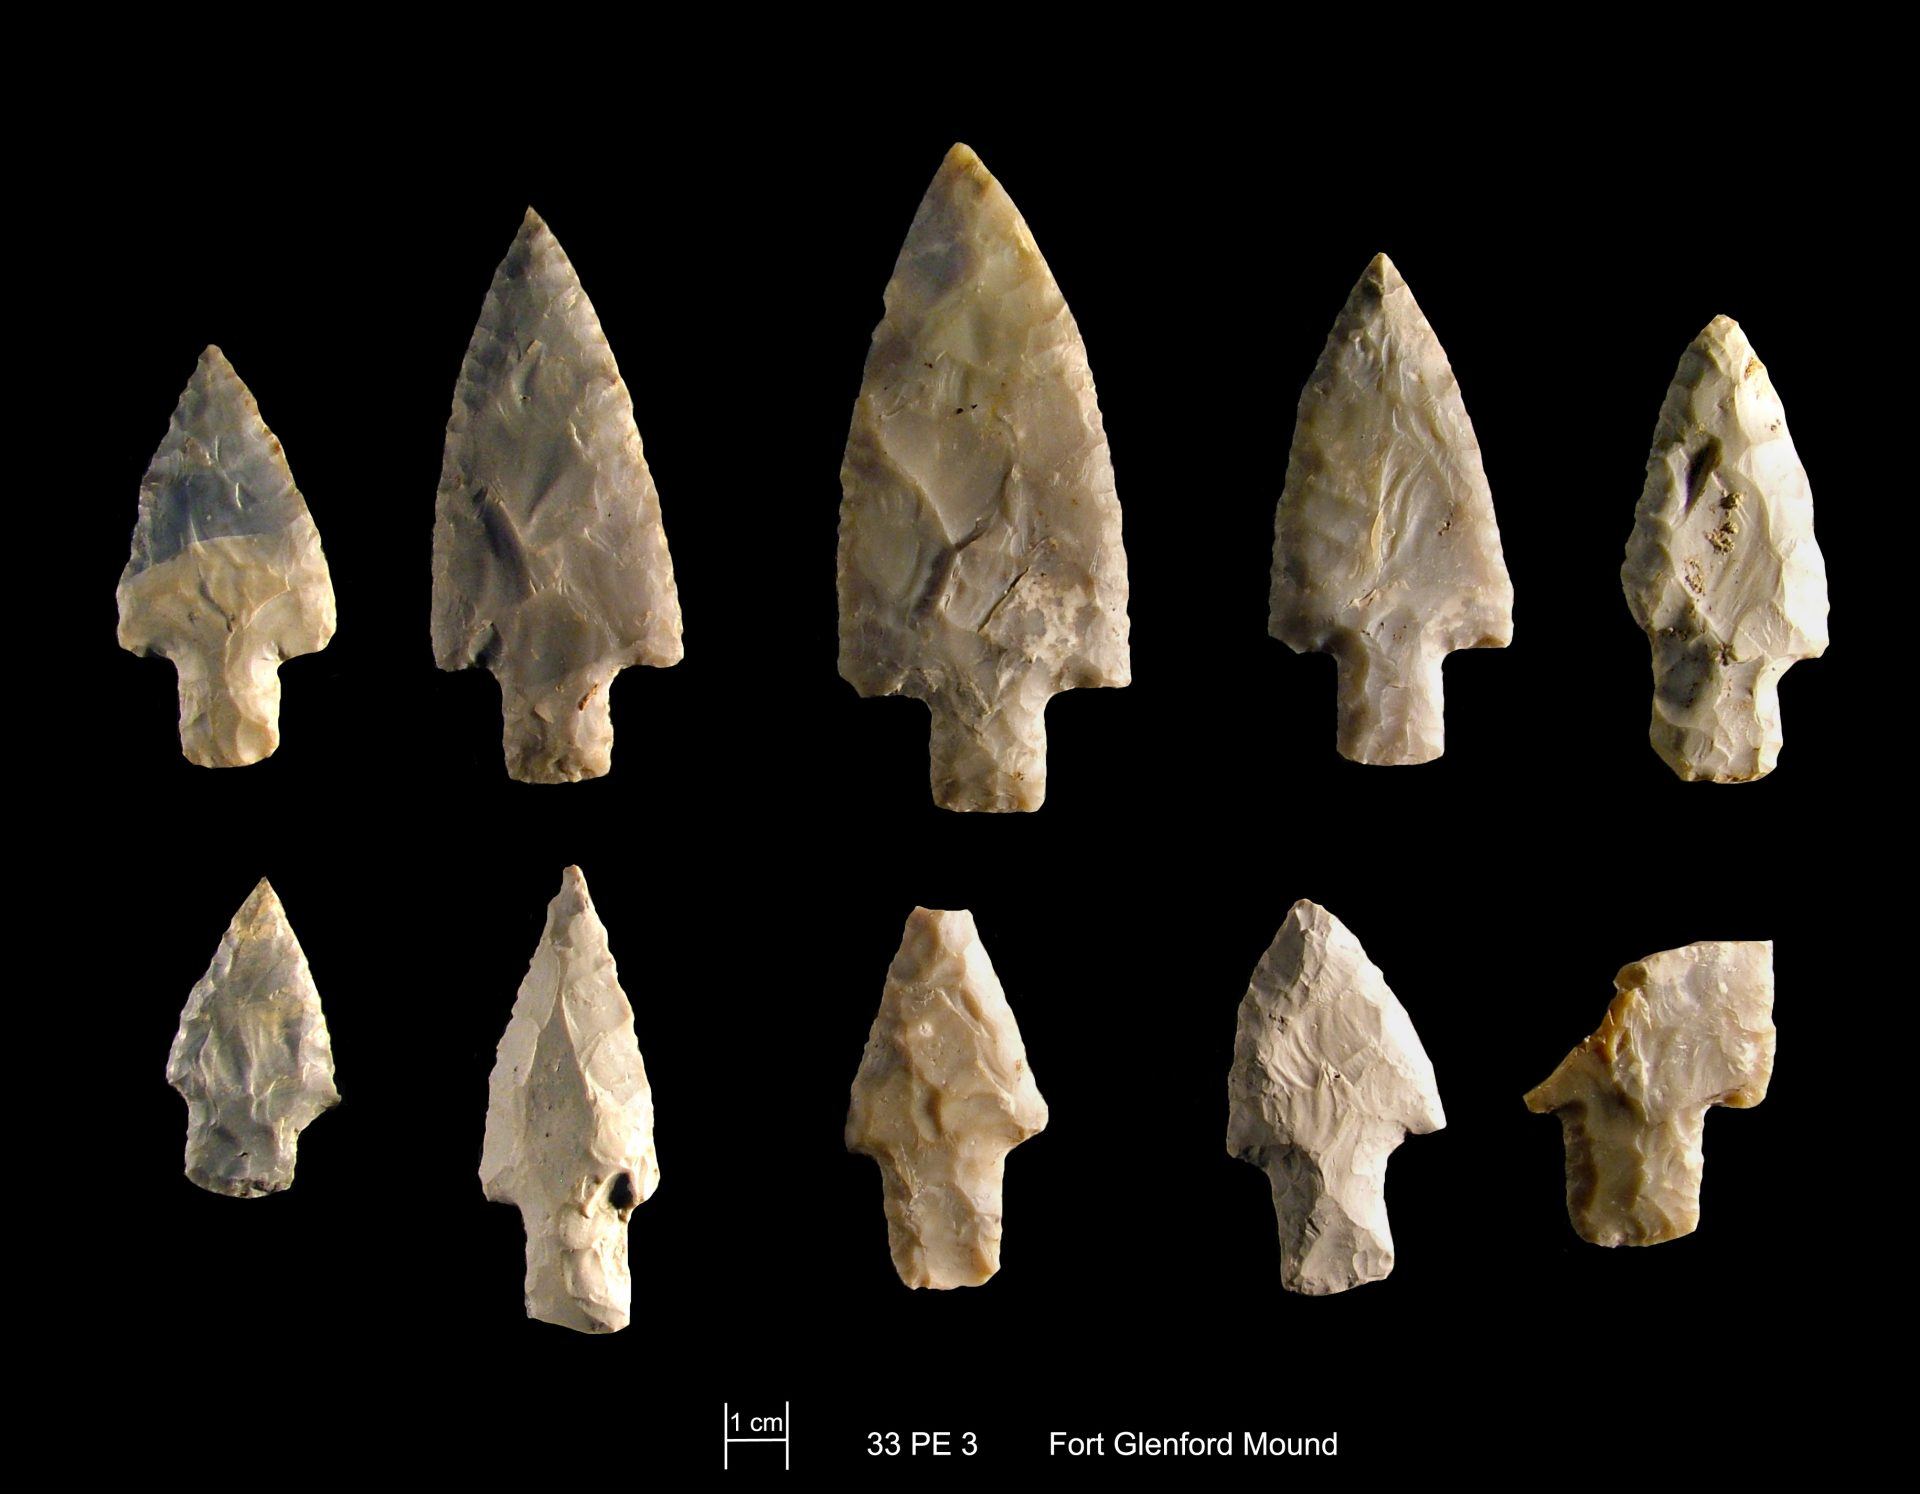 Adena points excavated from the stone mound at Glenford Fort. Photo courtesy of Richard Moats.